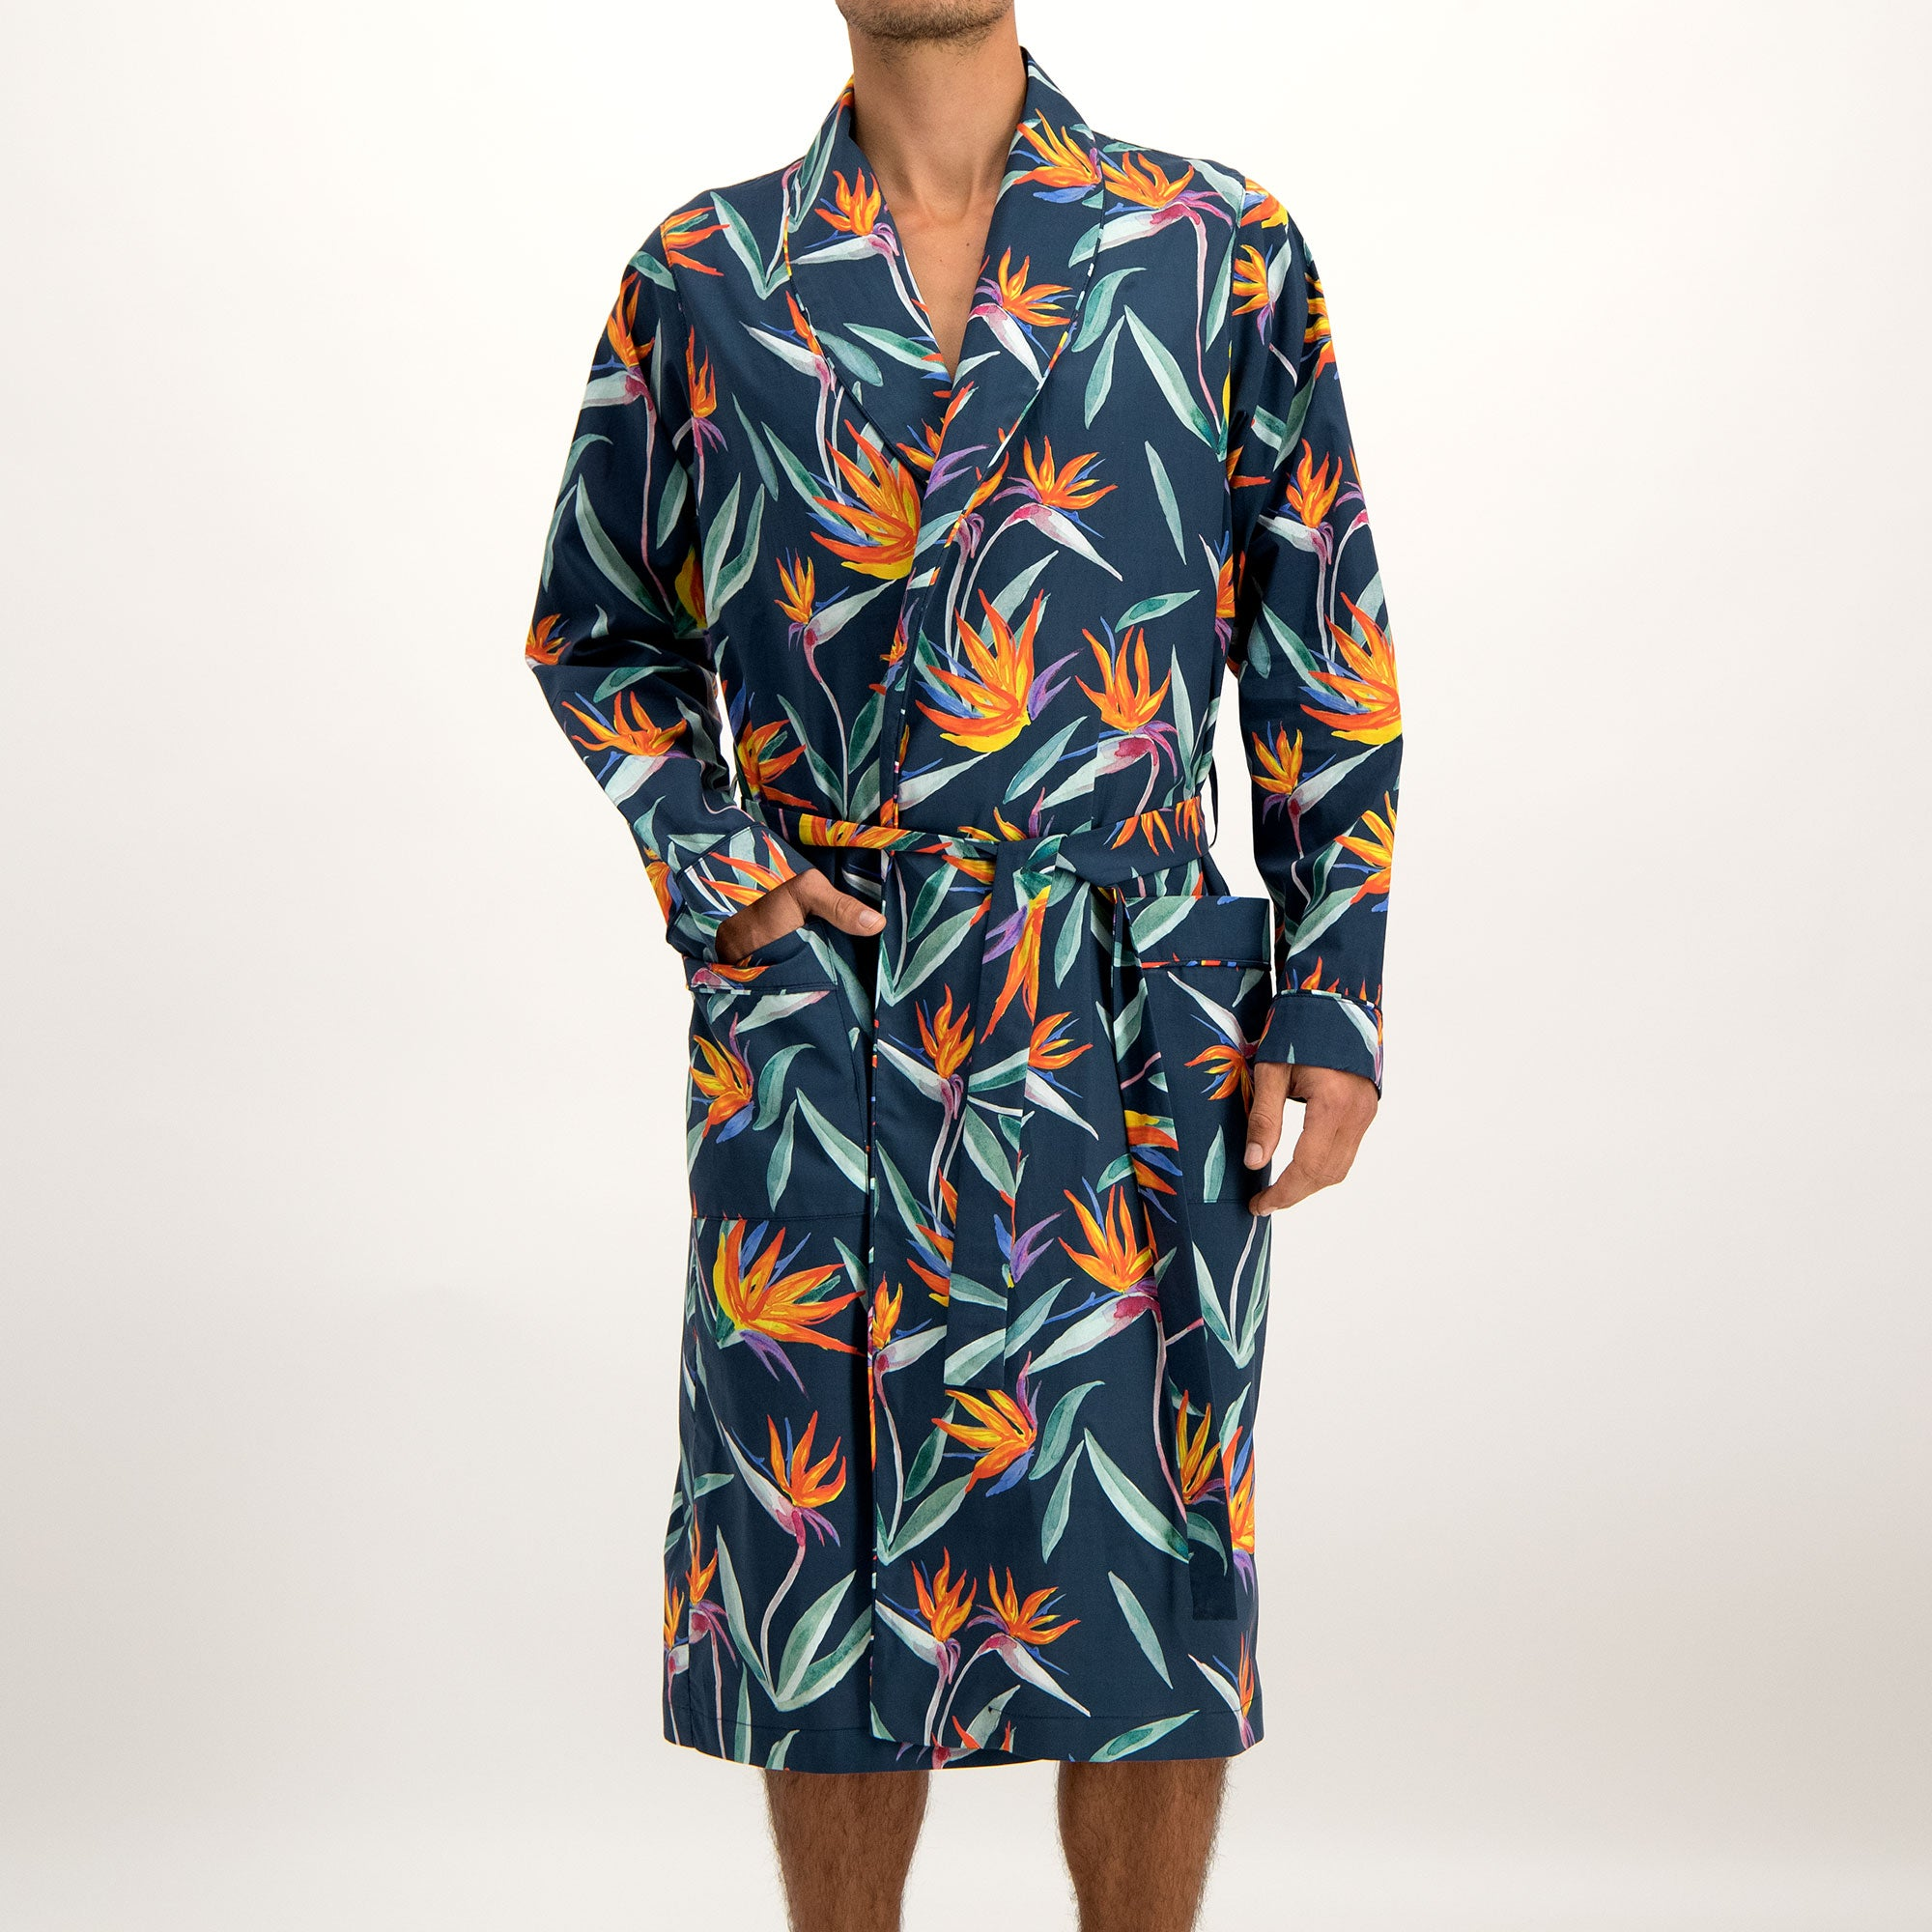 Mens Gown Strelitzia Black - Woodstock Laundry